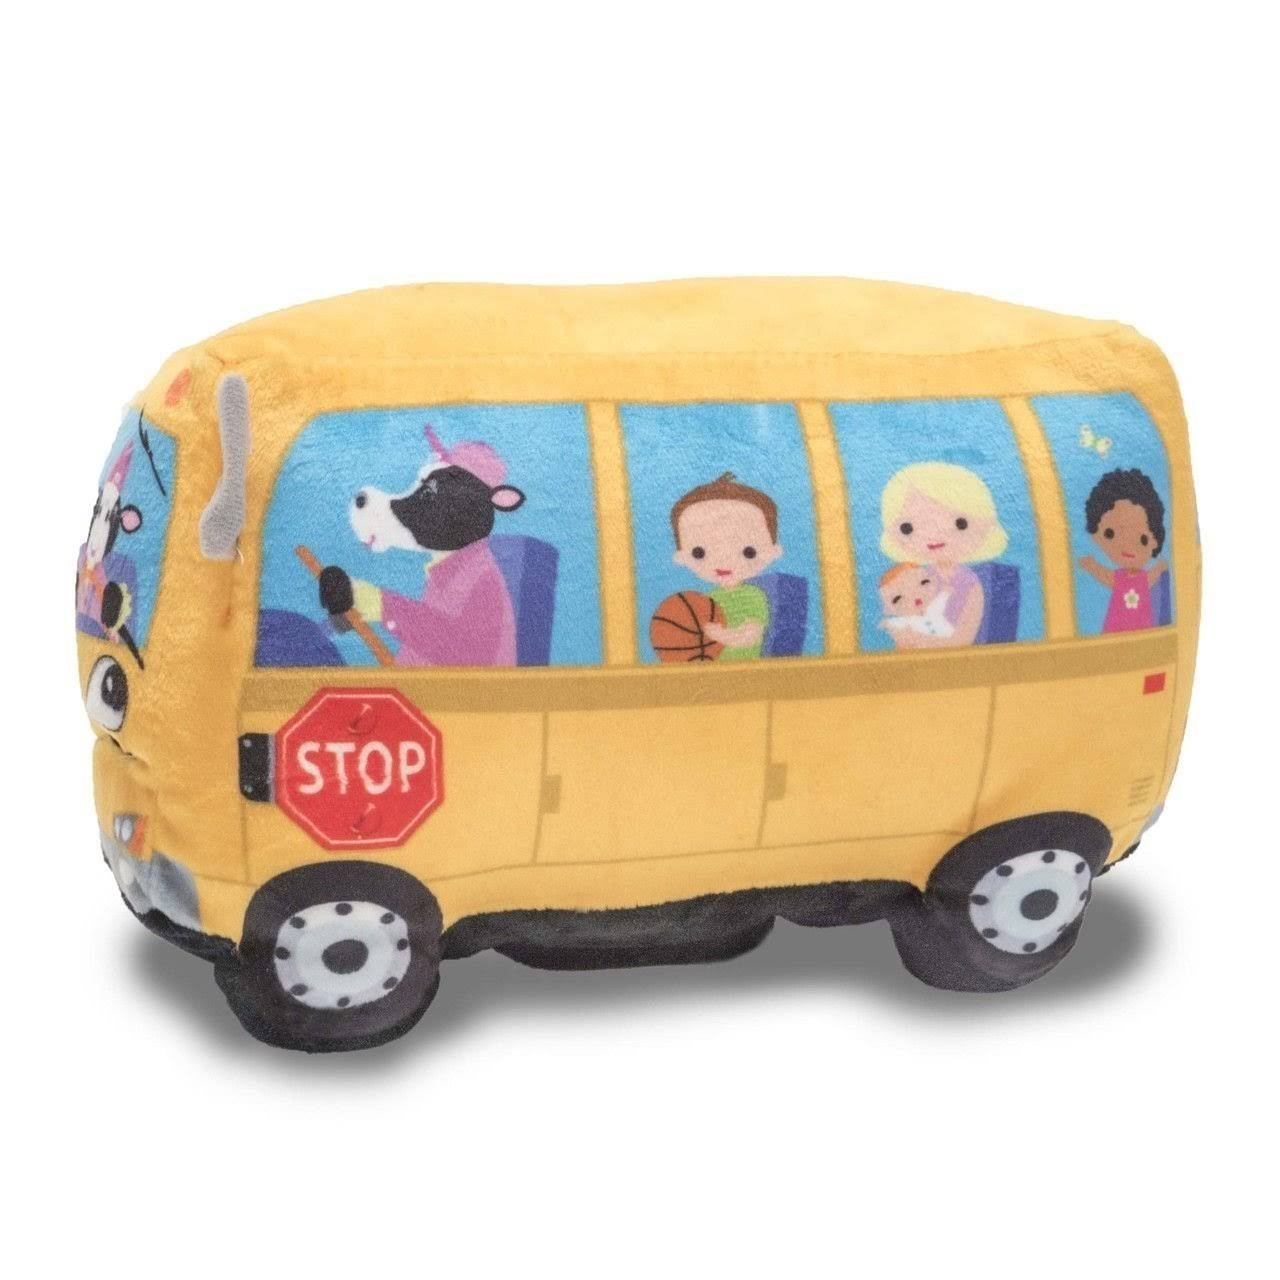 Cuddle Barn Animated Toy Wheelie School Bus - Singing Wheels on the Bus